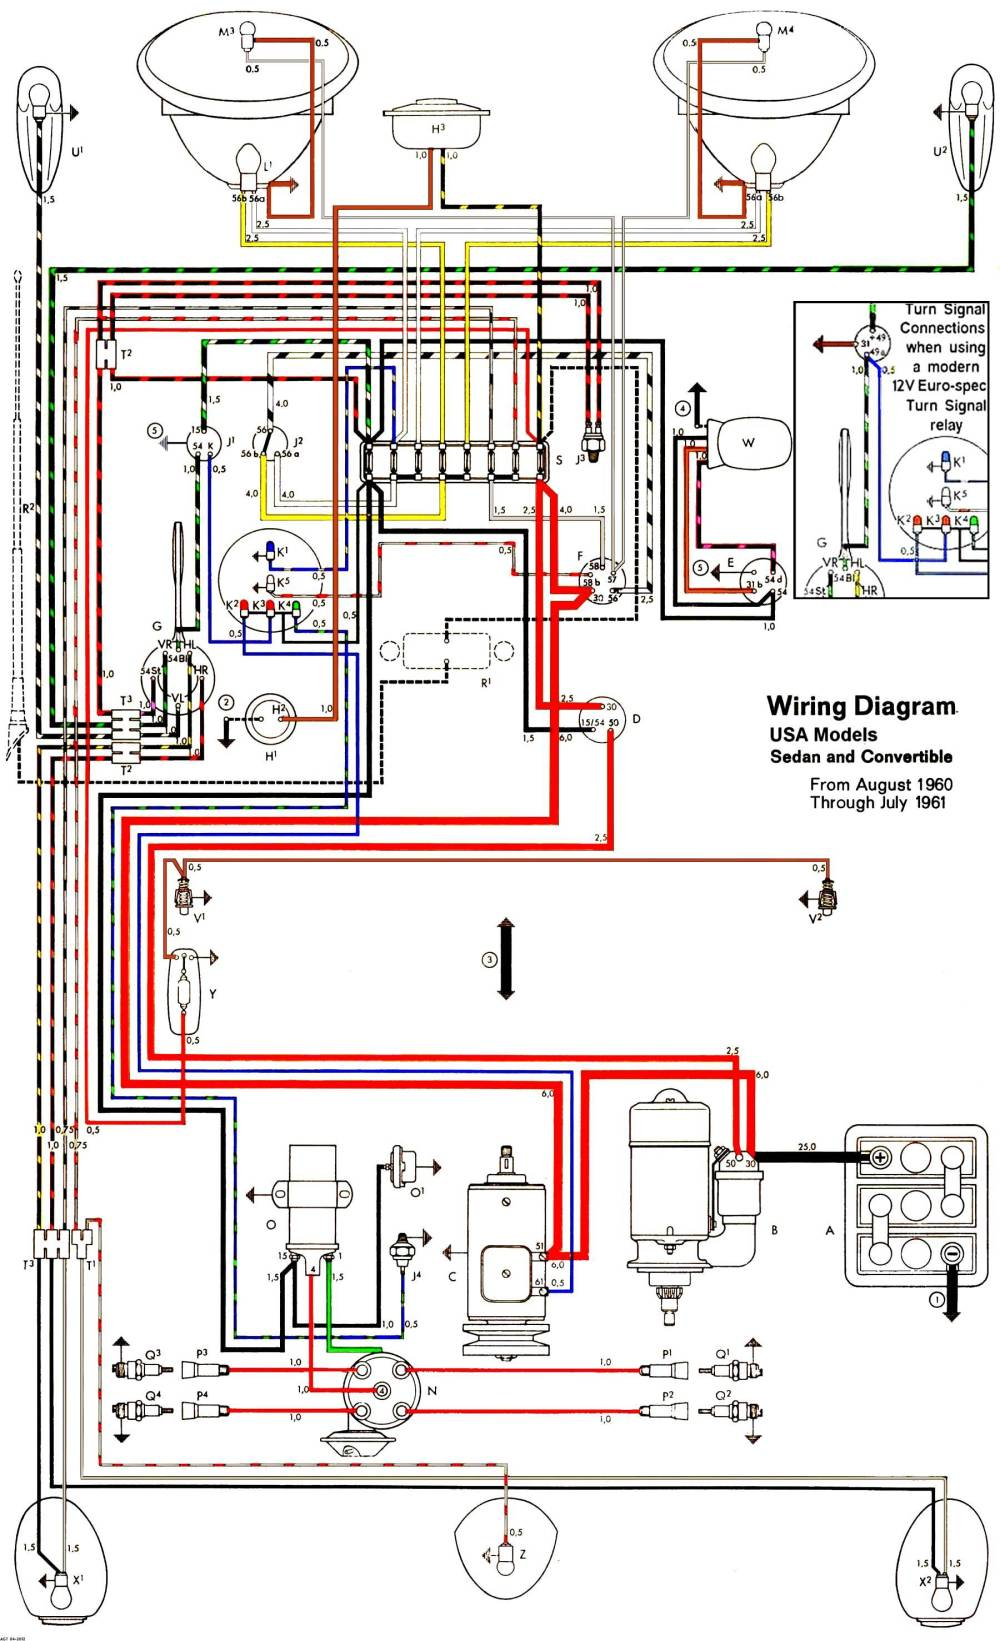 medium resolution of thesamba com type 1 wiring diagrams 2004 mitsubishi lancer wiring diagram 2004 vw jetta tail light wiring diagrams